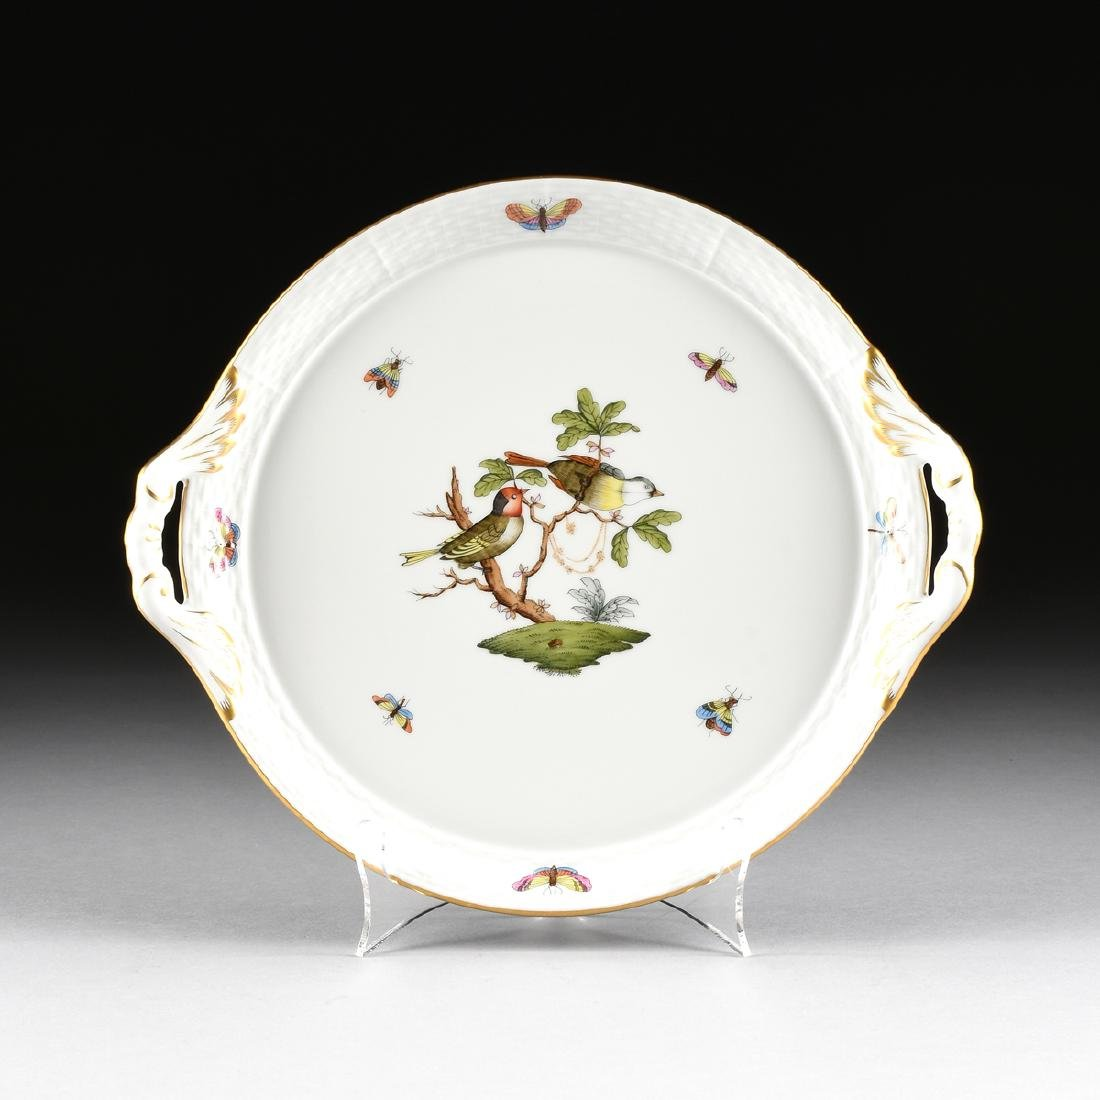 A HEREND POLYCHROME ENAMEL AND GILT DECORATED PORCELAIN